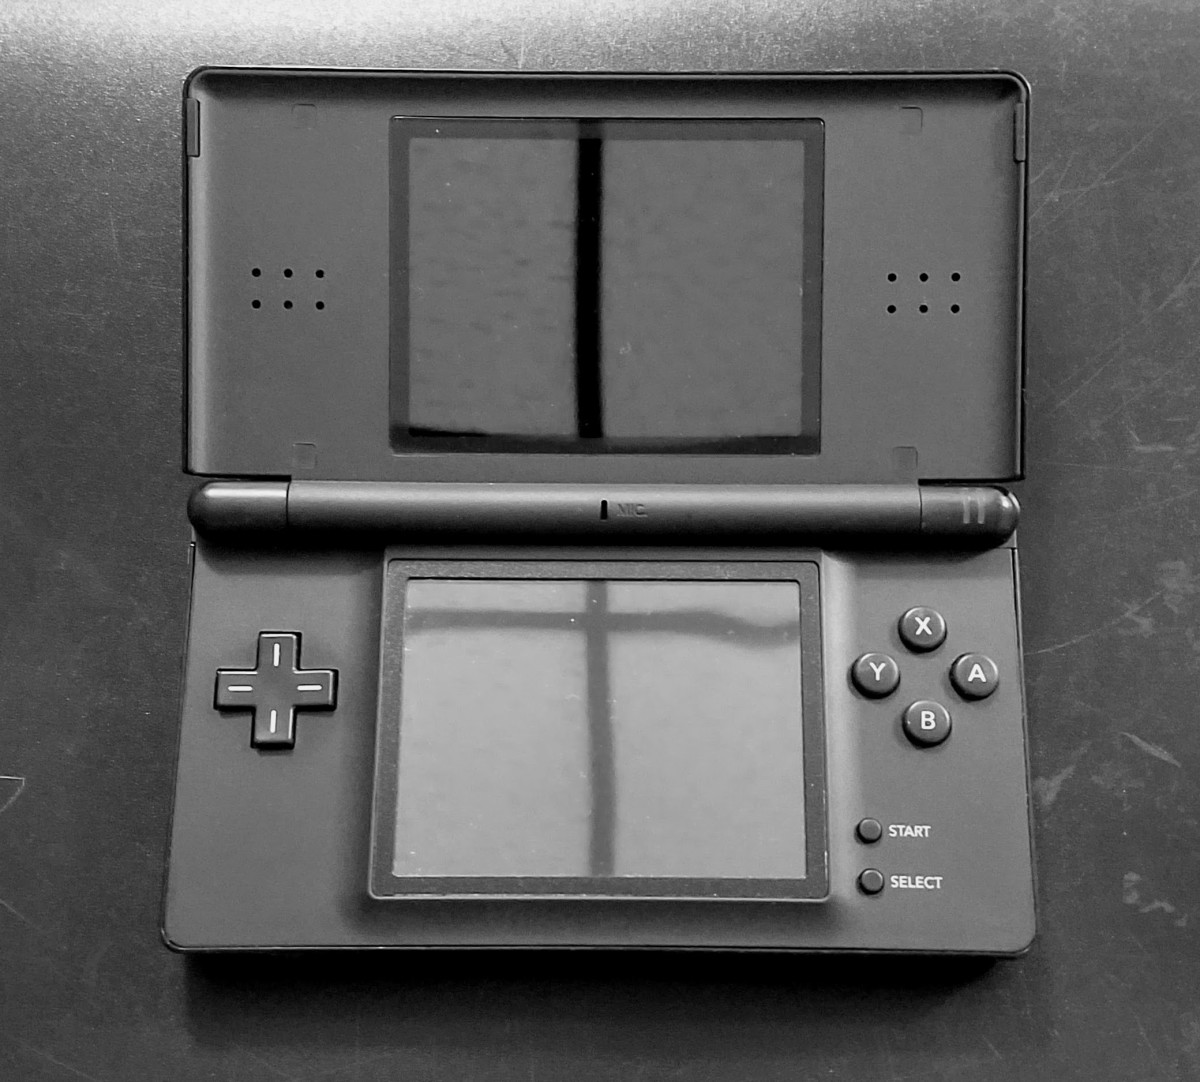 The Nintendo DS Lite plays both Nintendo DS and Game Boy Advance cartridges.